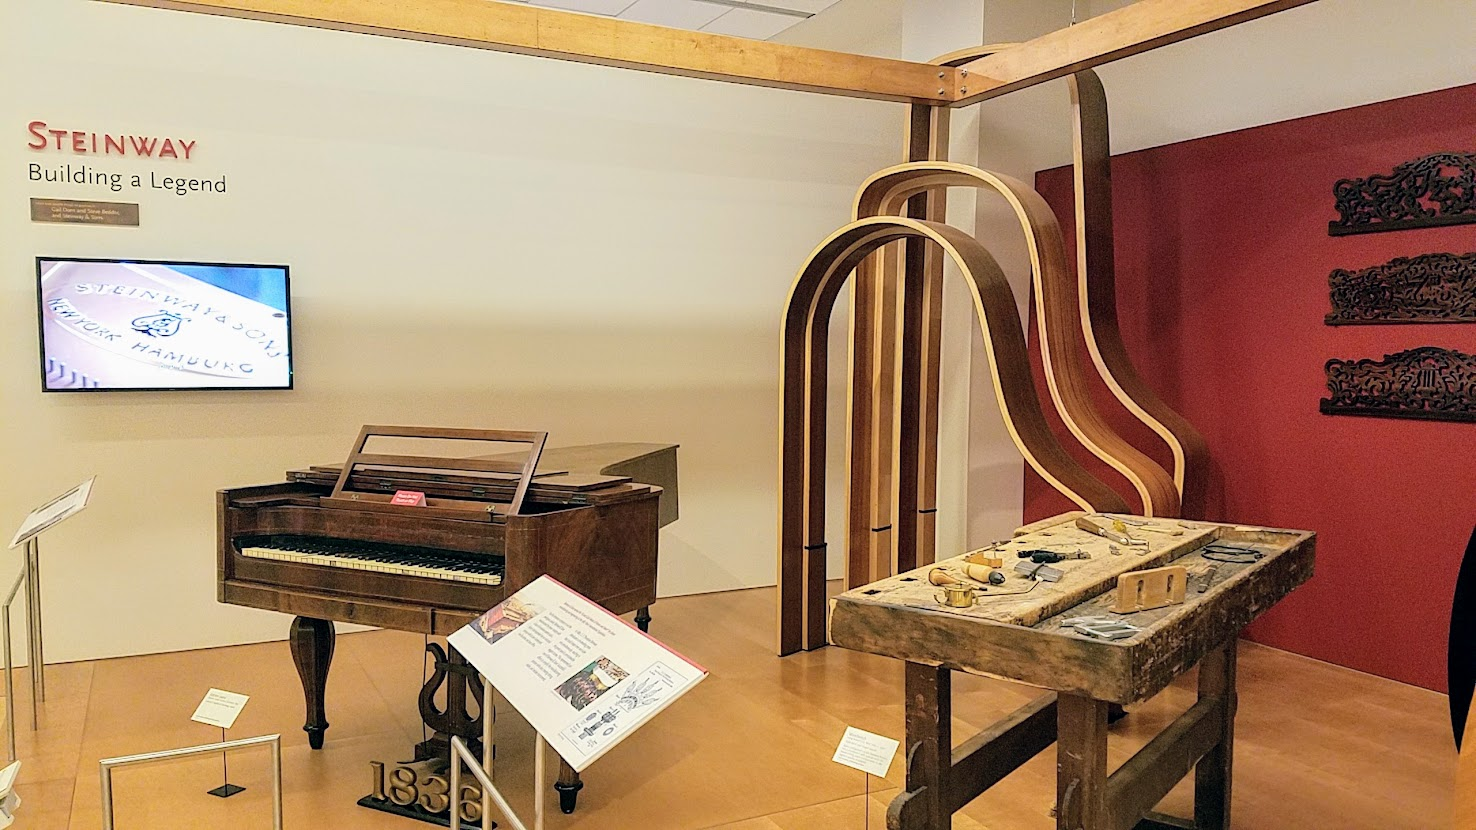 Music Instrument Museum (MIM) Geographic galleries, Steinway Exhibit, details behind the instruments were also included among the exhibits, with very informative longer videos with instrument makers explaining what is inside and where the parts all come from, and how they are assembled.